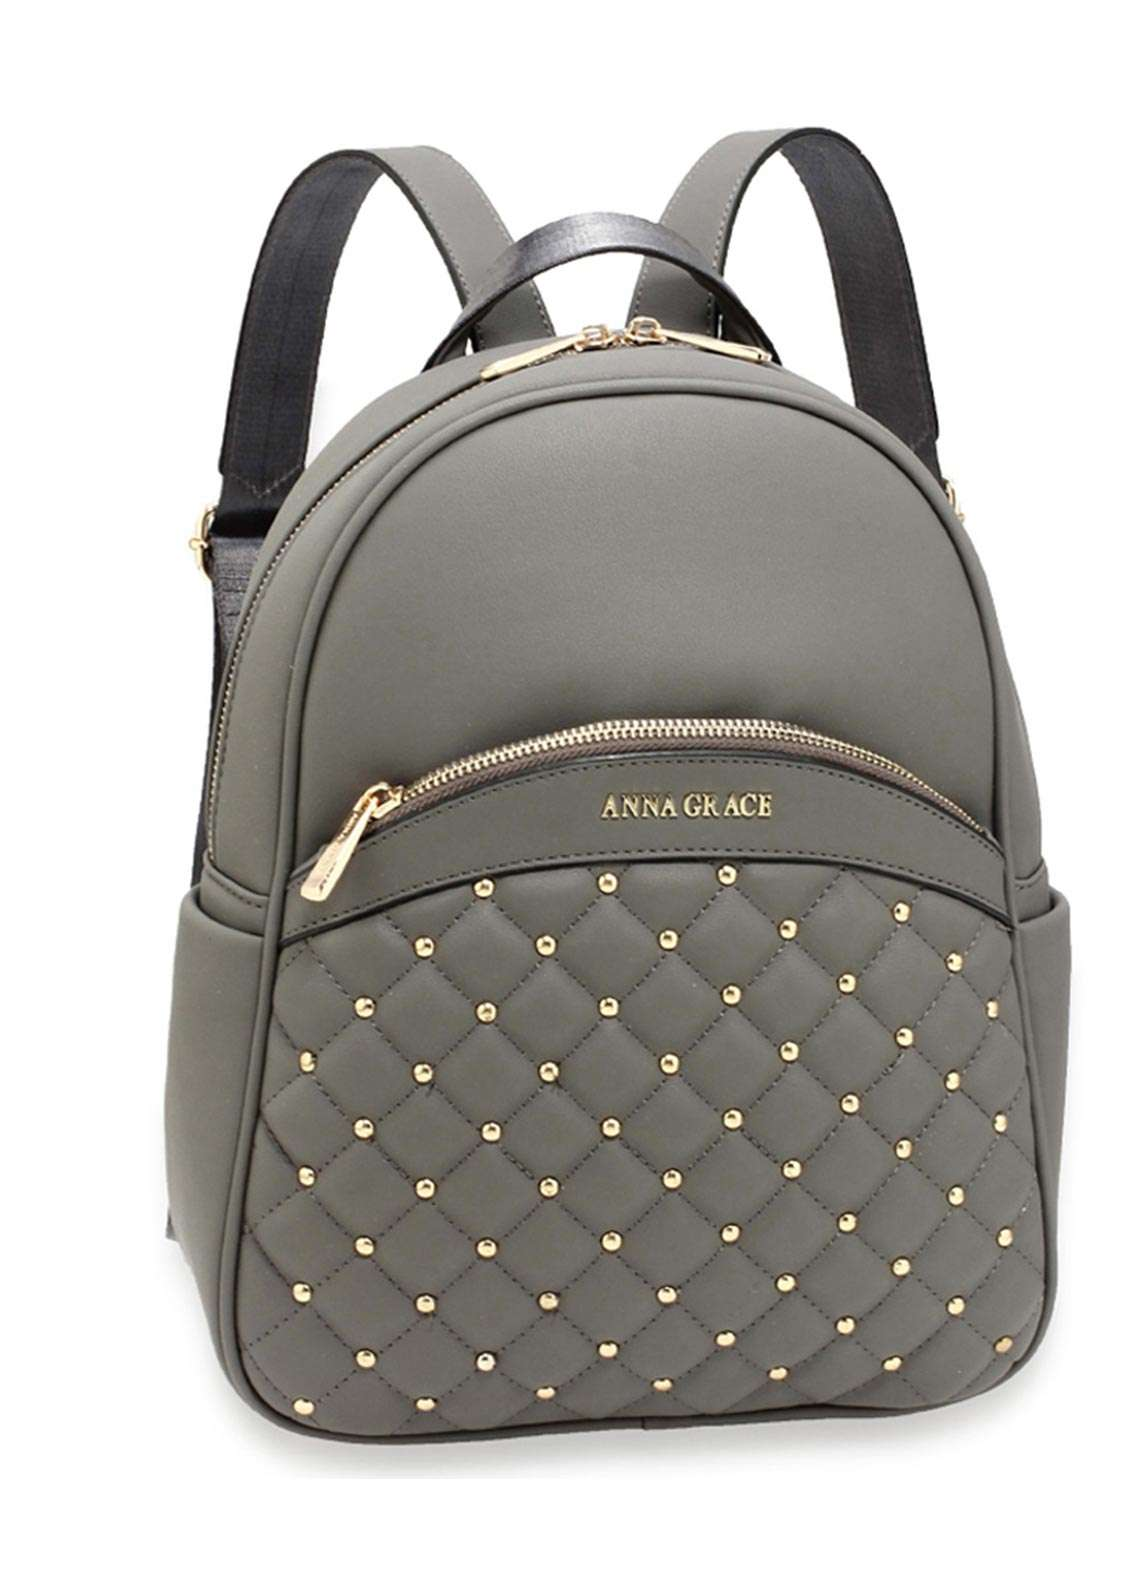 Anna Grace London Faux Leather Backpack Bags  for Women  Grey with Smooth Texture